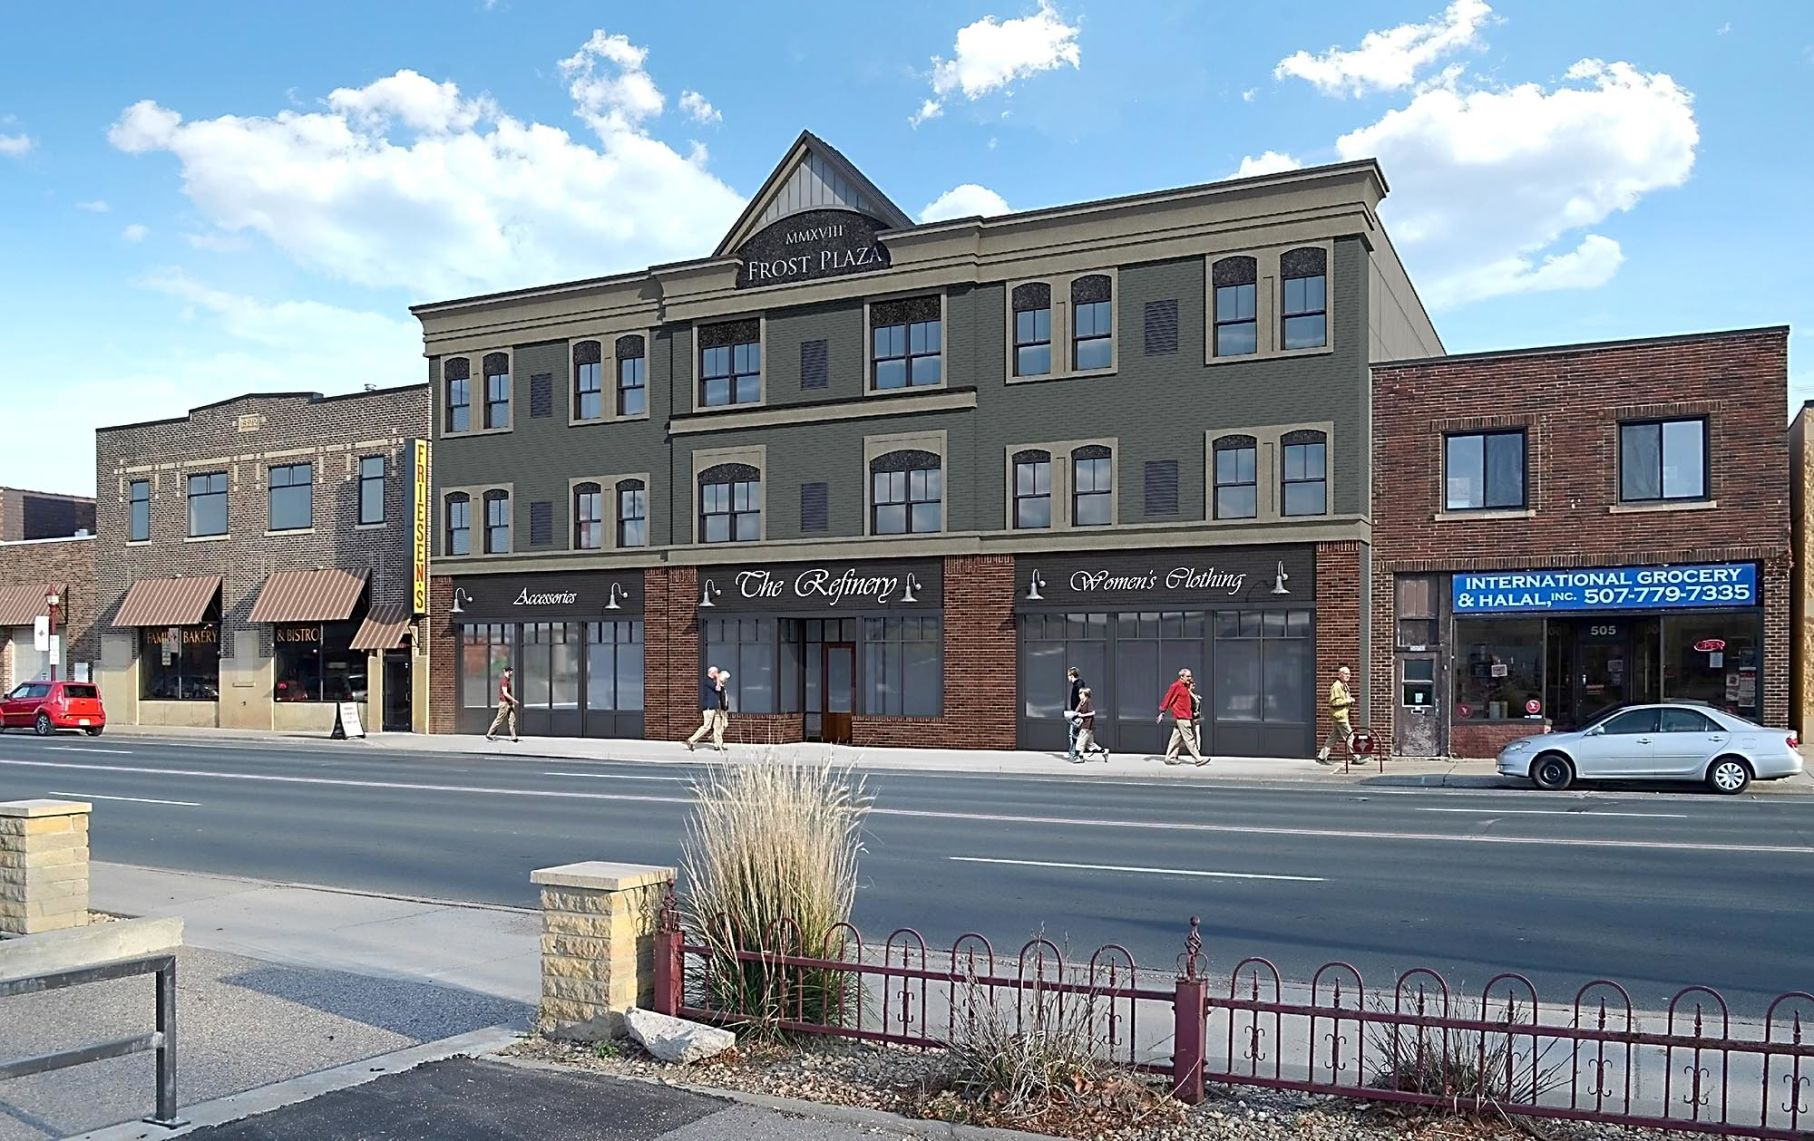 New Retail Apartment Building Going Up In Old Town News